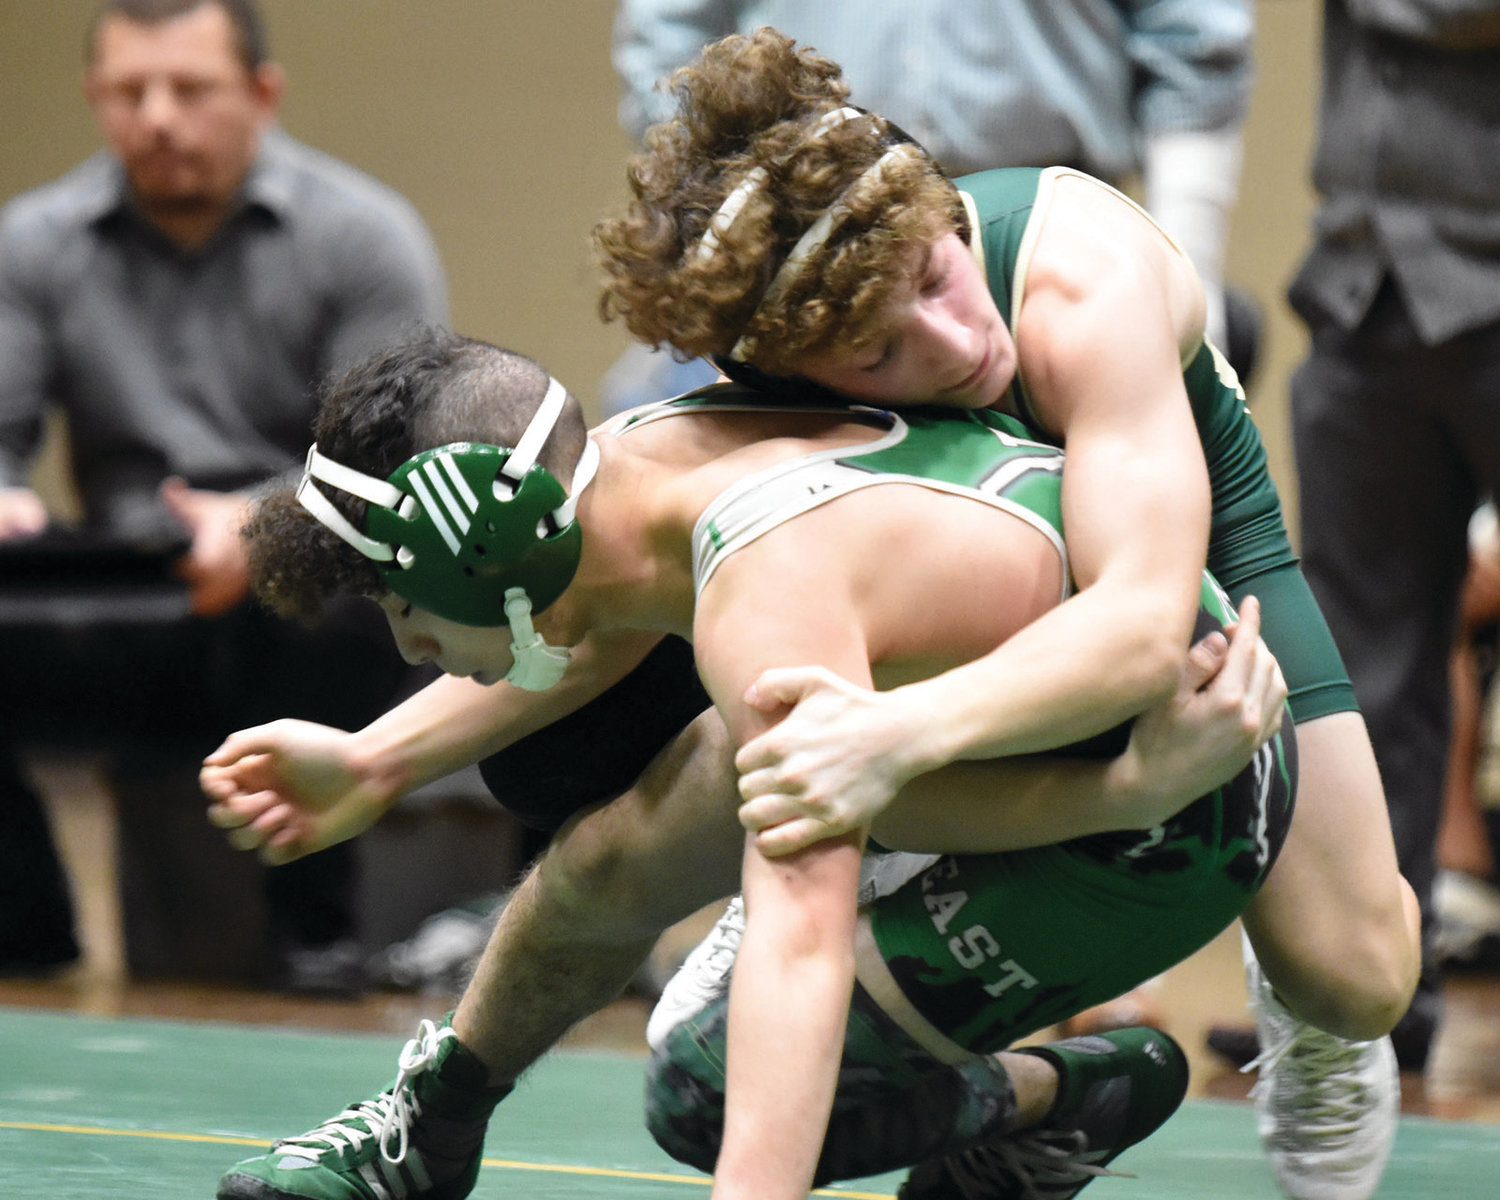 TOP POSITION: Bishop Hendricken's Noah Sclama takes down an opponent in a recent match.